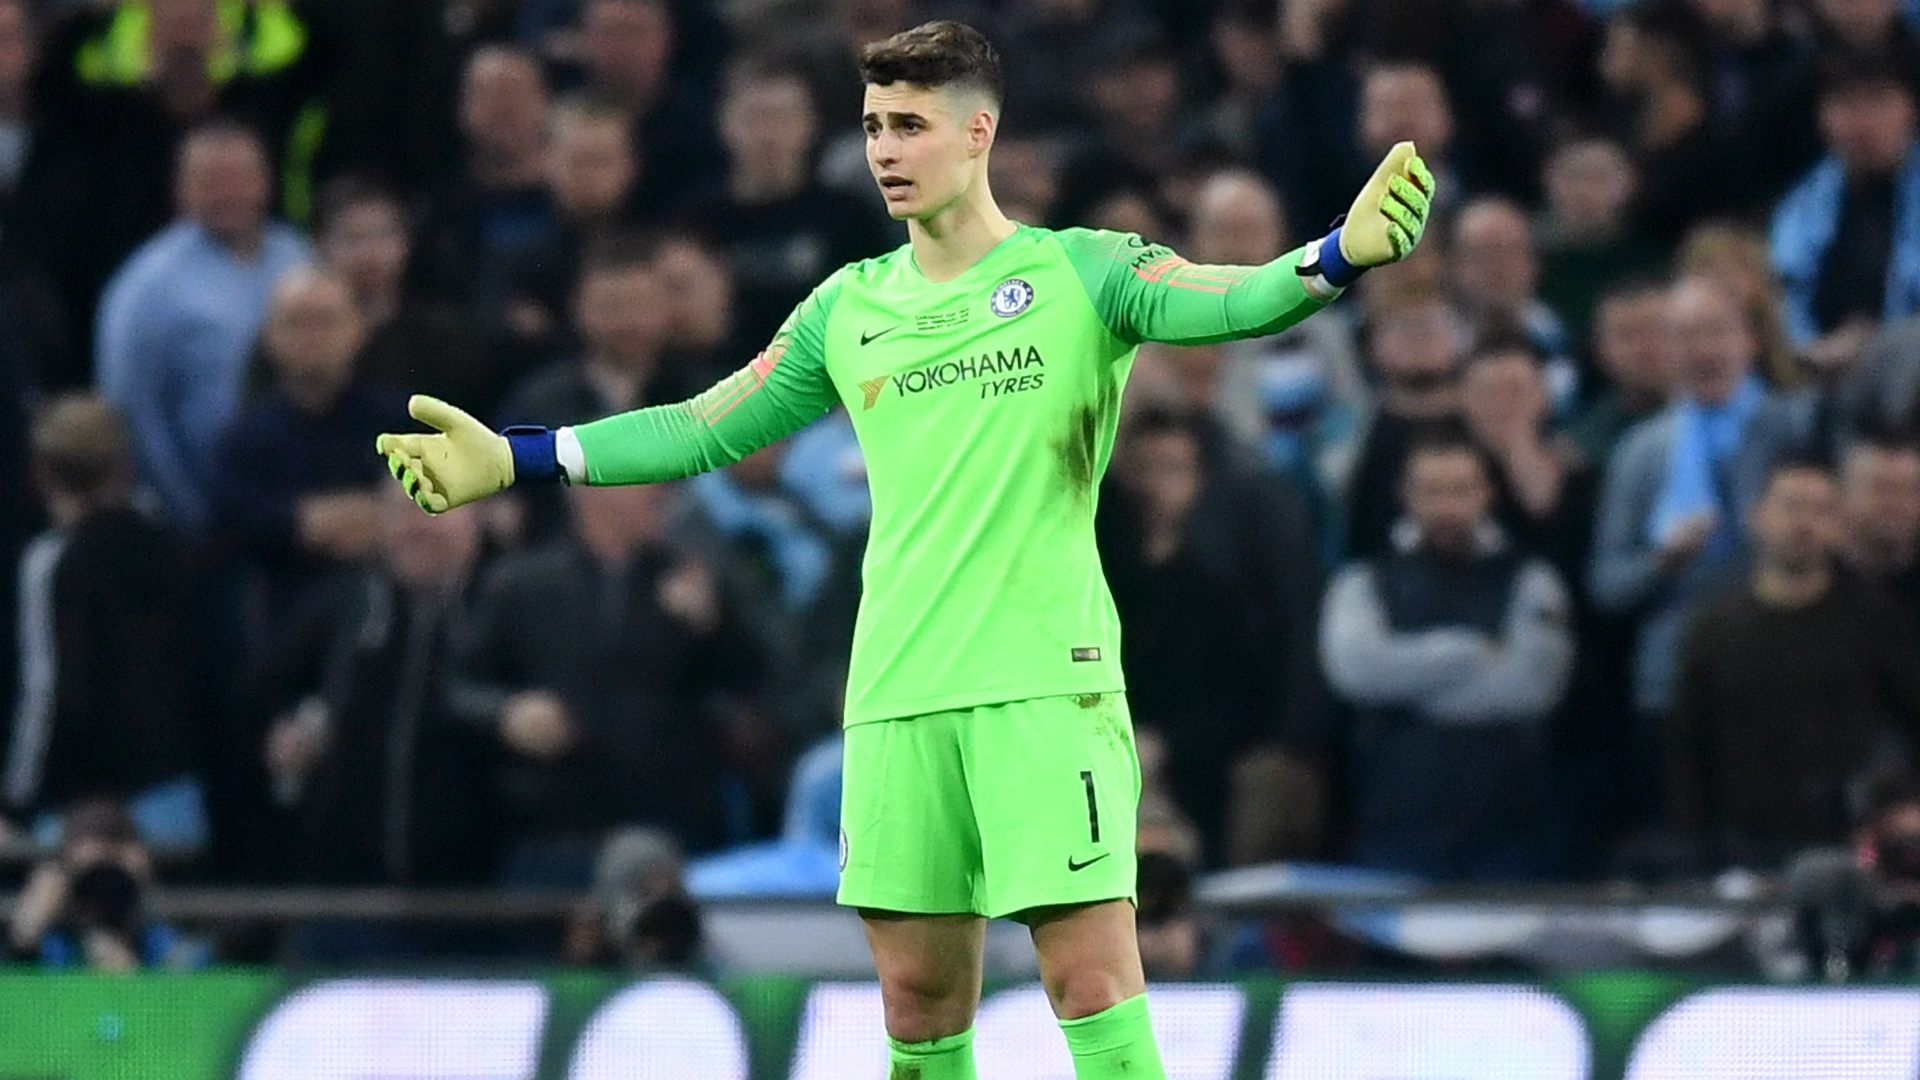 Valencia are itnerested in Kepa Arrizabalaga